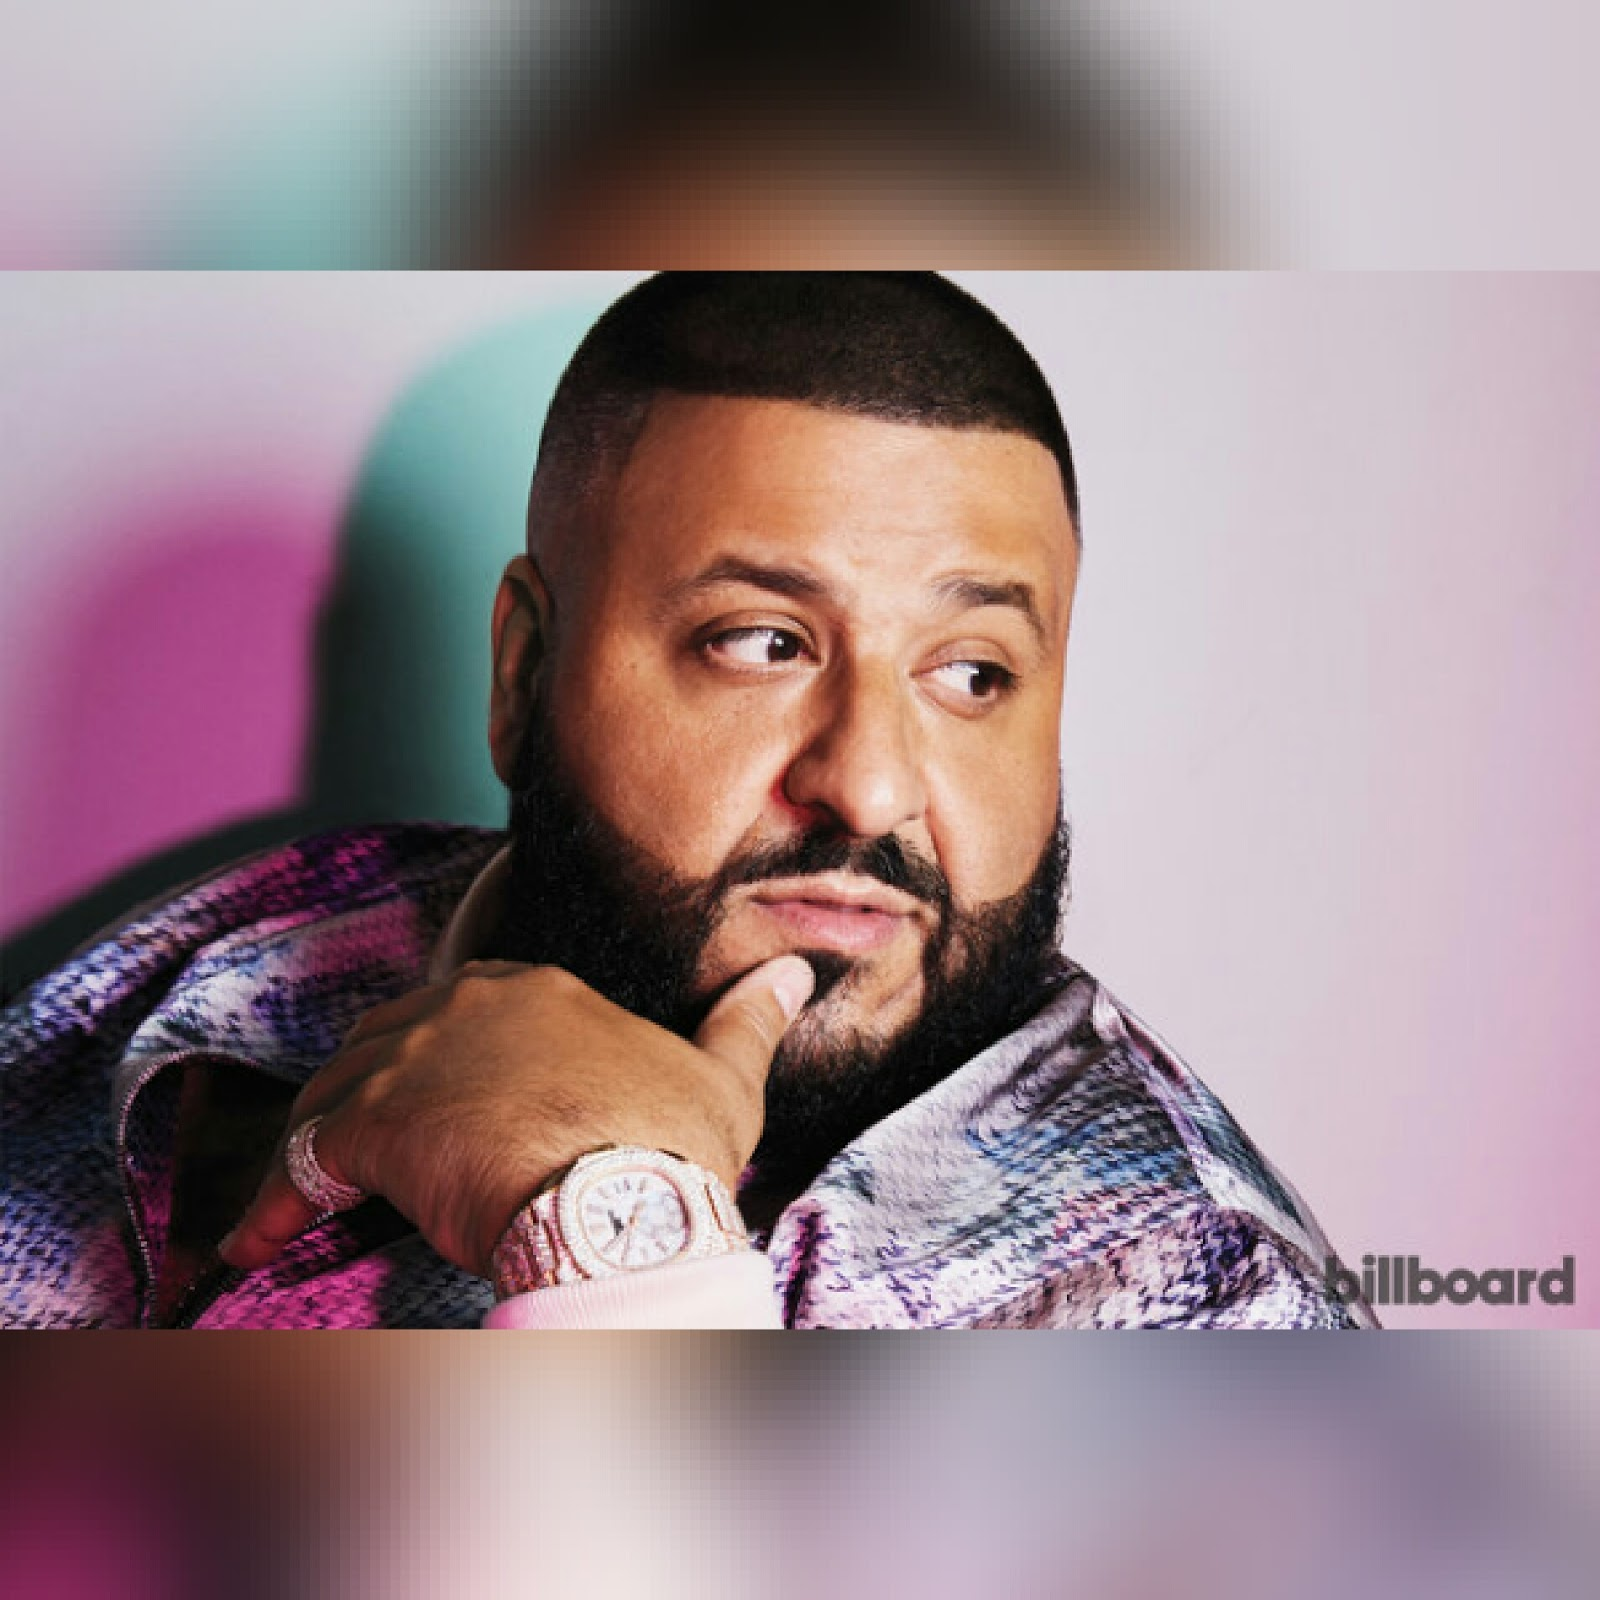 dj khaled im still download